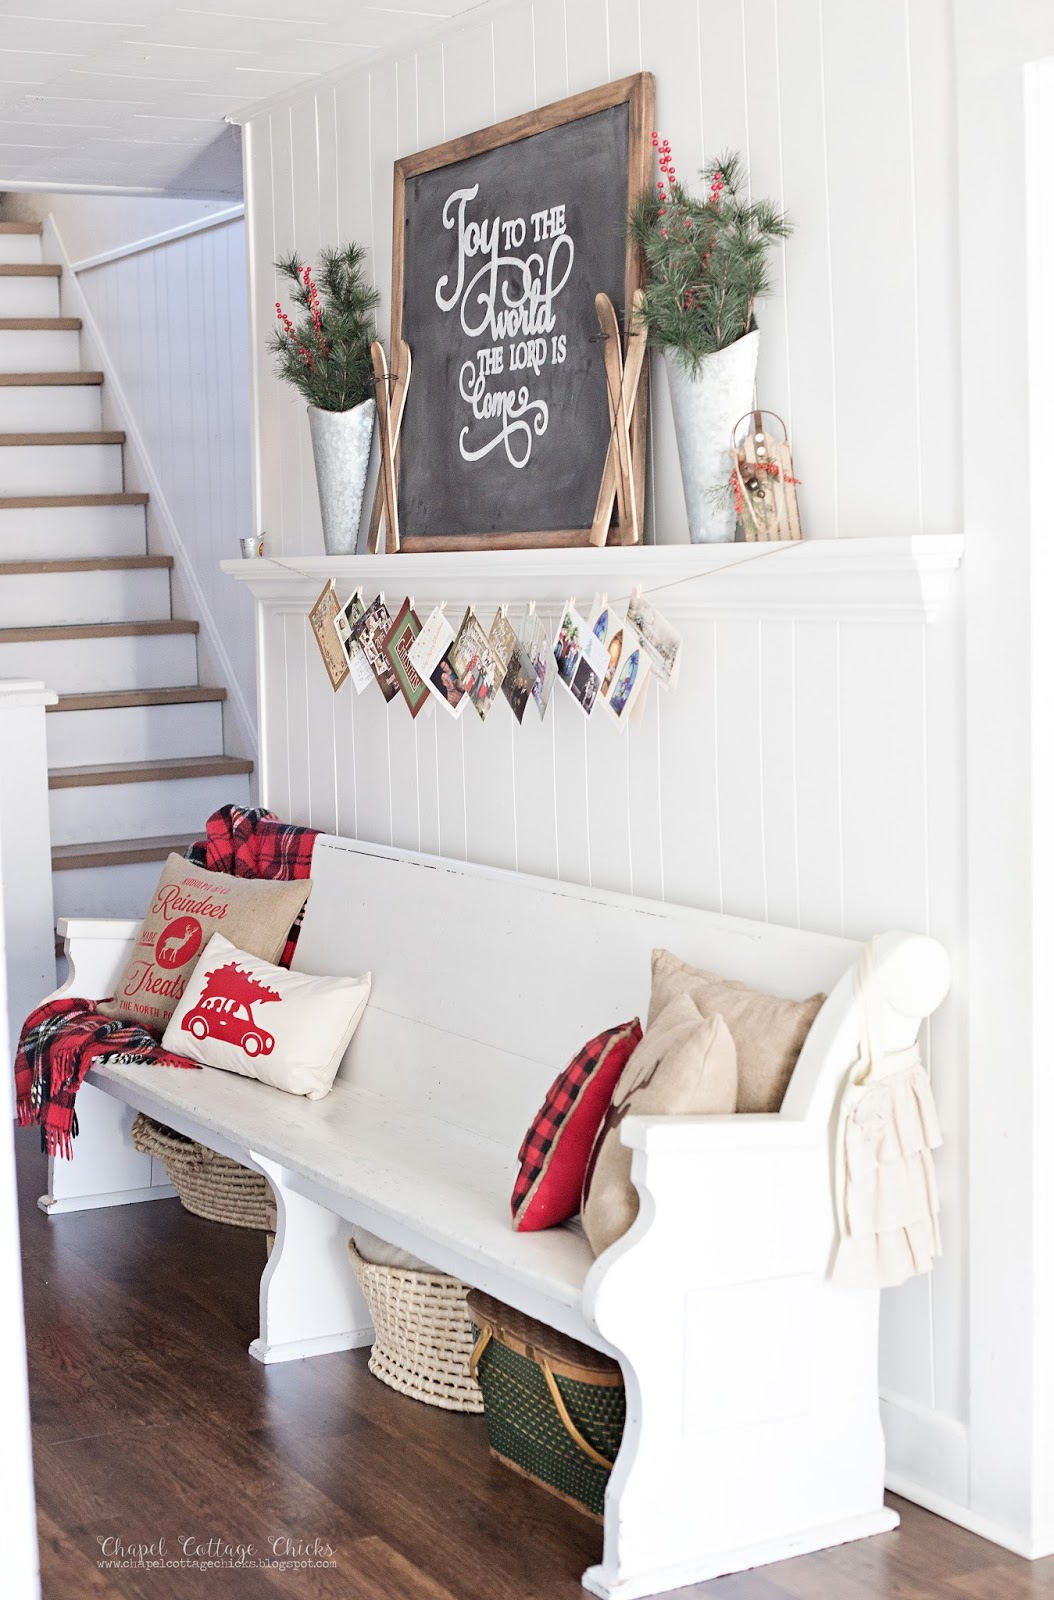 chapel cottage chicks december 2015 - Joanna Gaines Christmas Decor